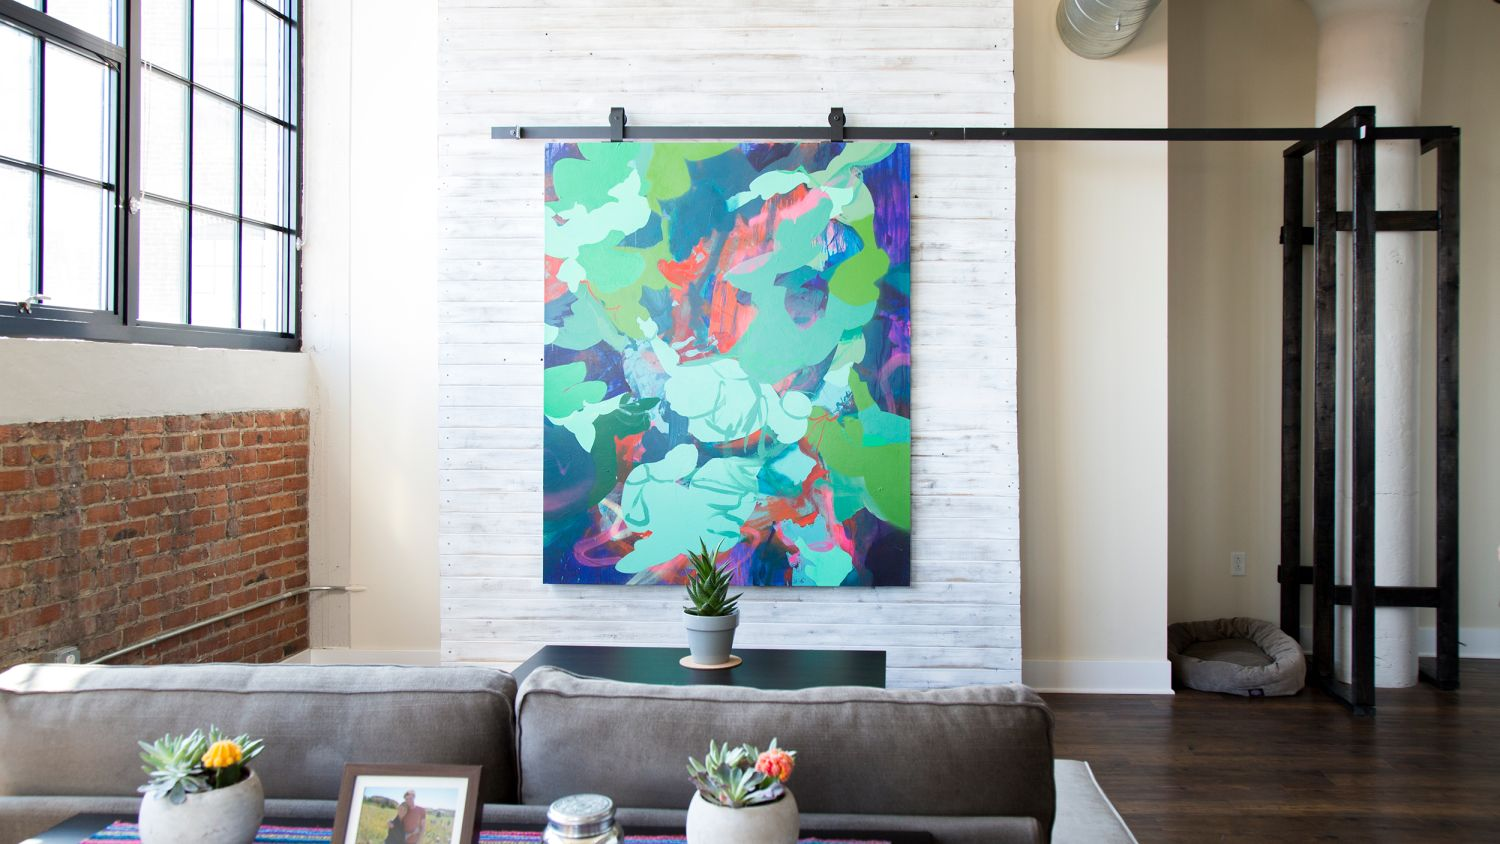 5 Places to Buy Large-Scale Art on a Budget